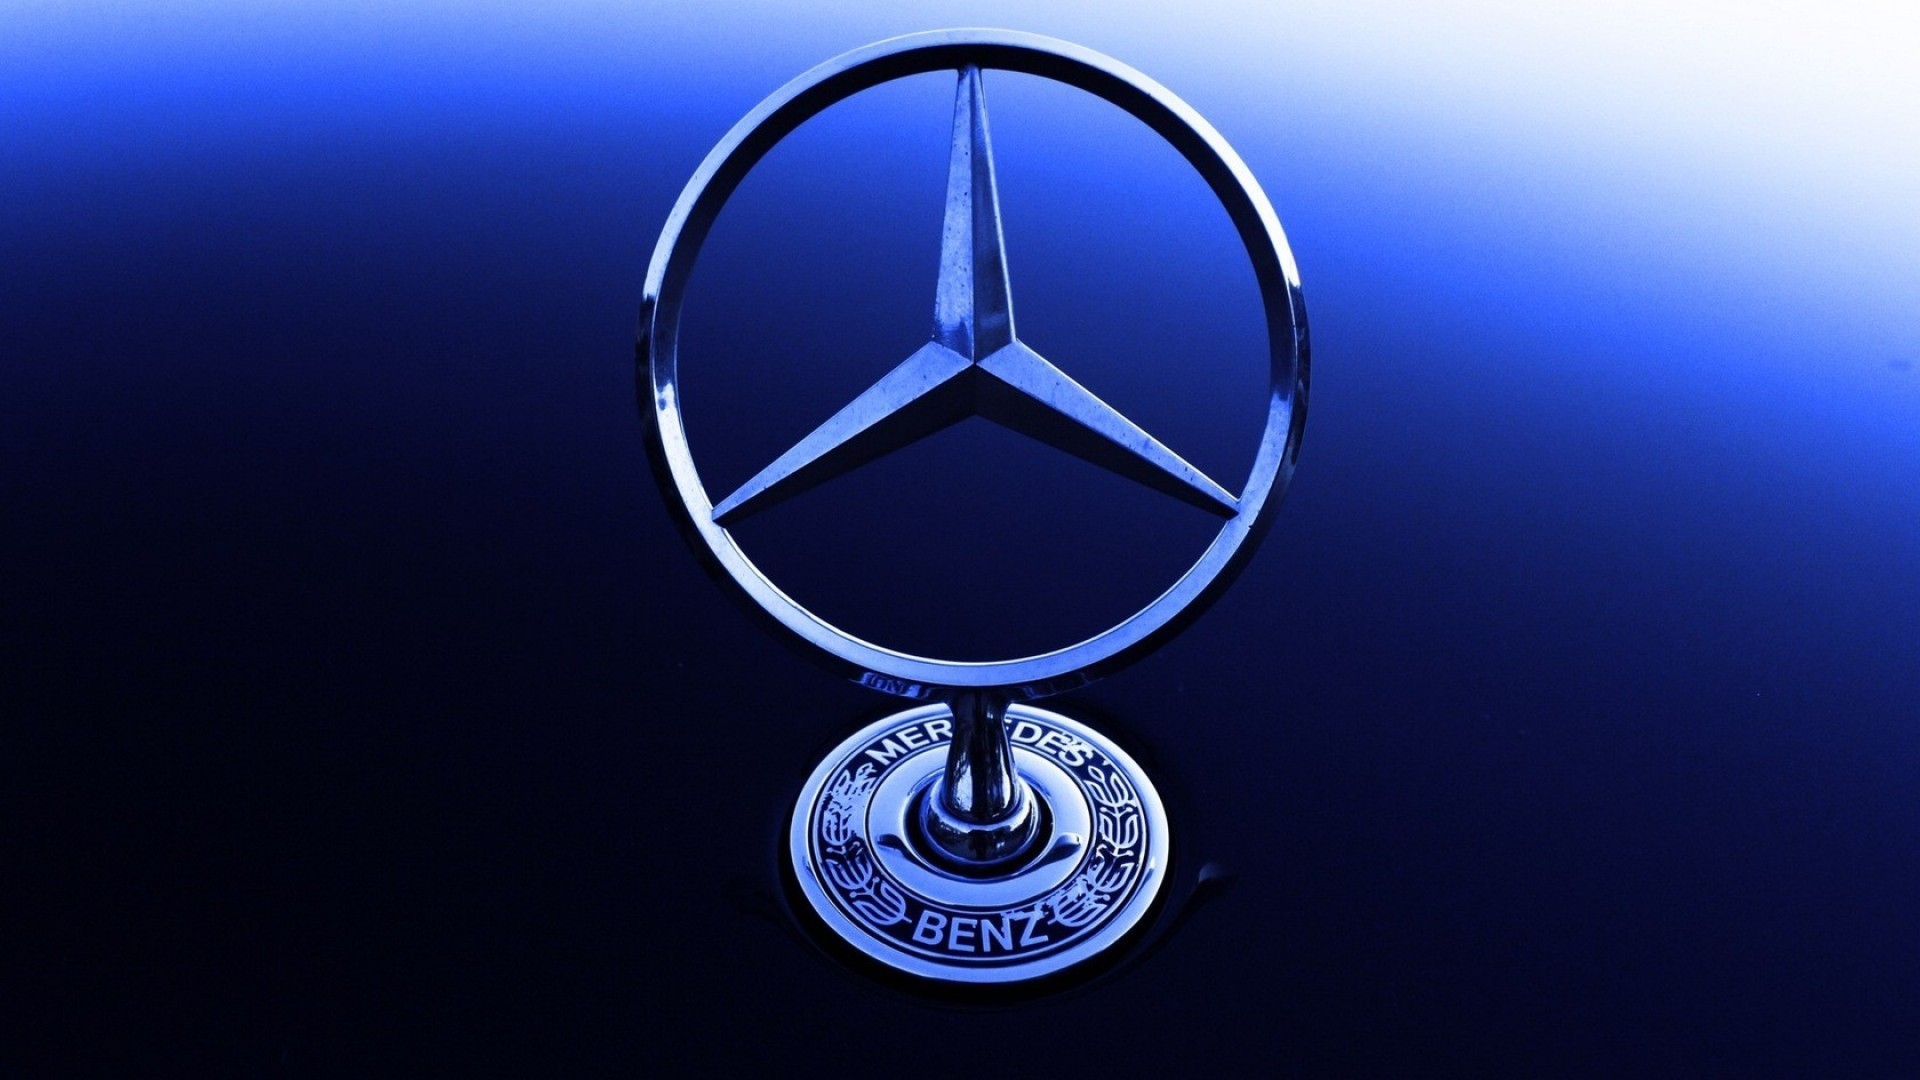 Mercedes benz logo wallpapers pictures images mercedes benz logo full hd wallpaper 1920x1080 voltagebd Images